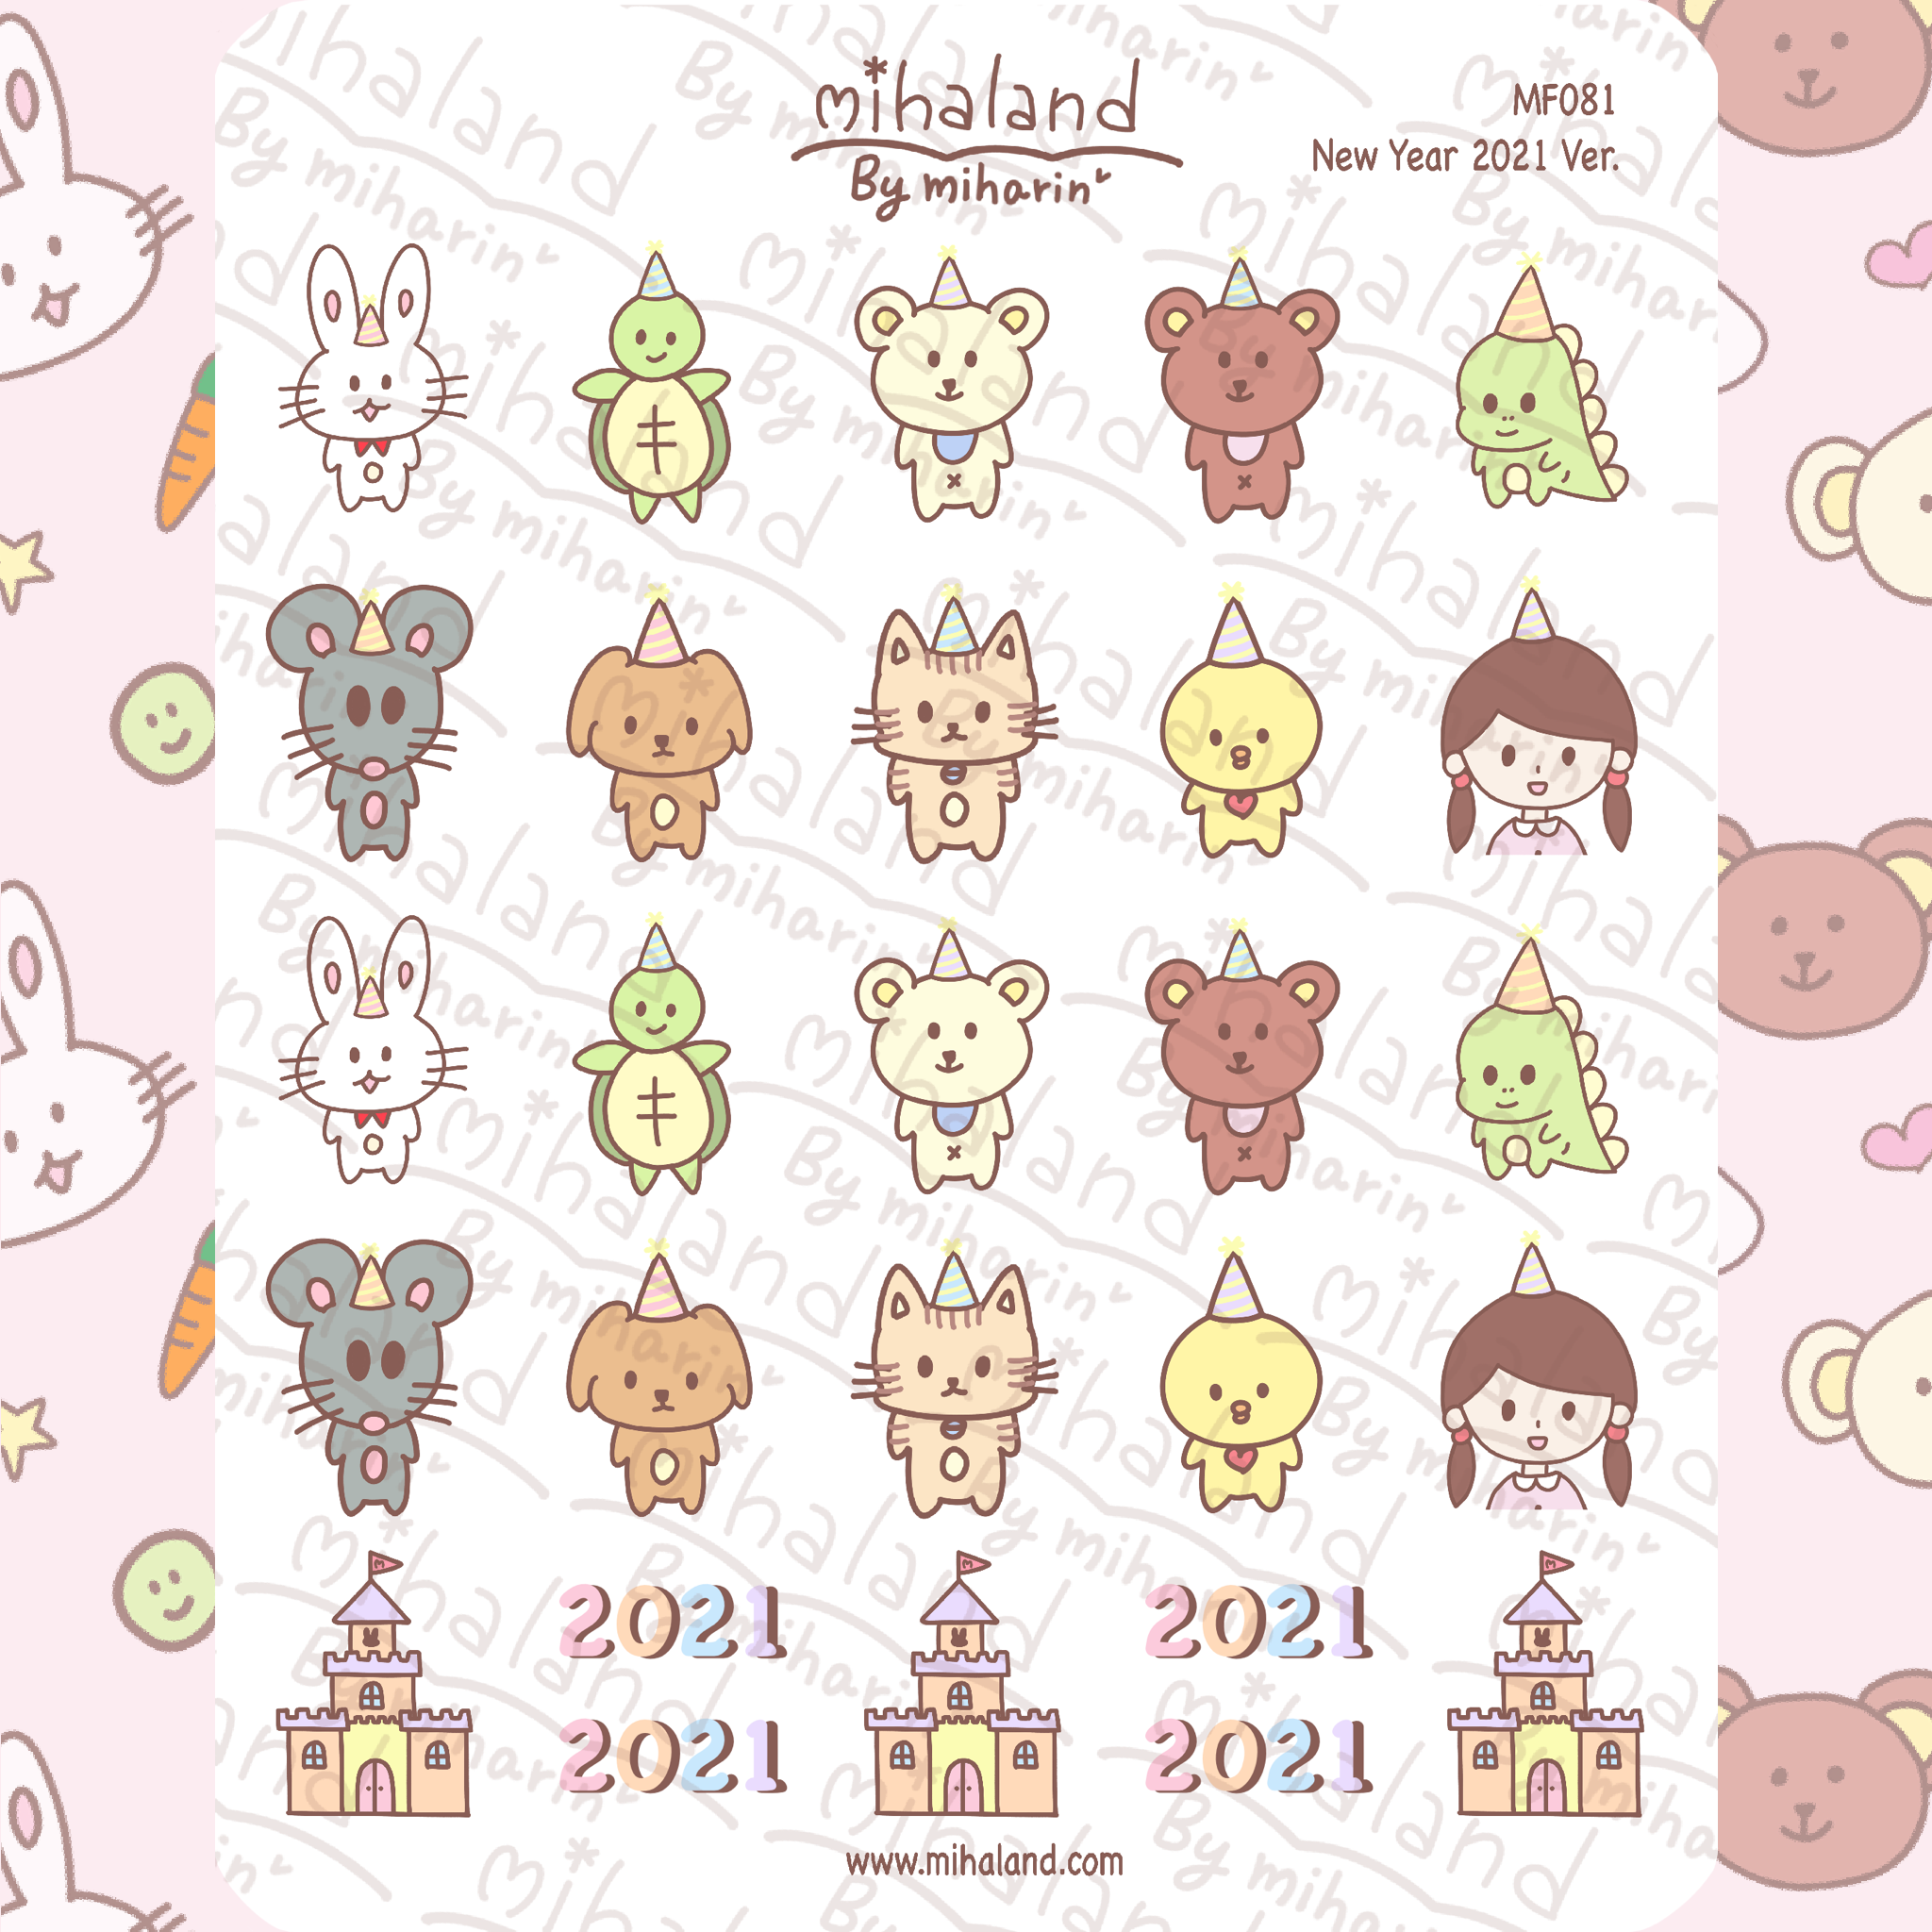 New Year 2021 Ver. Planner Stickers (MF081)